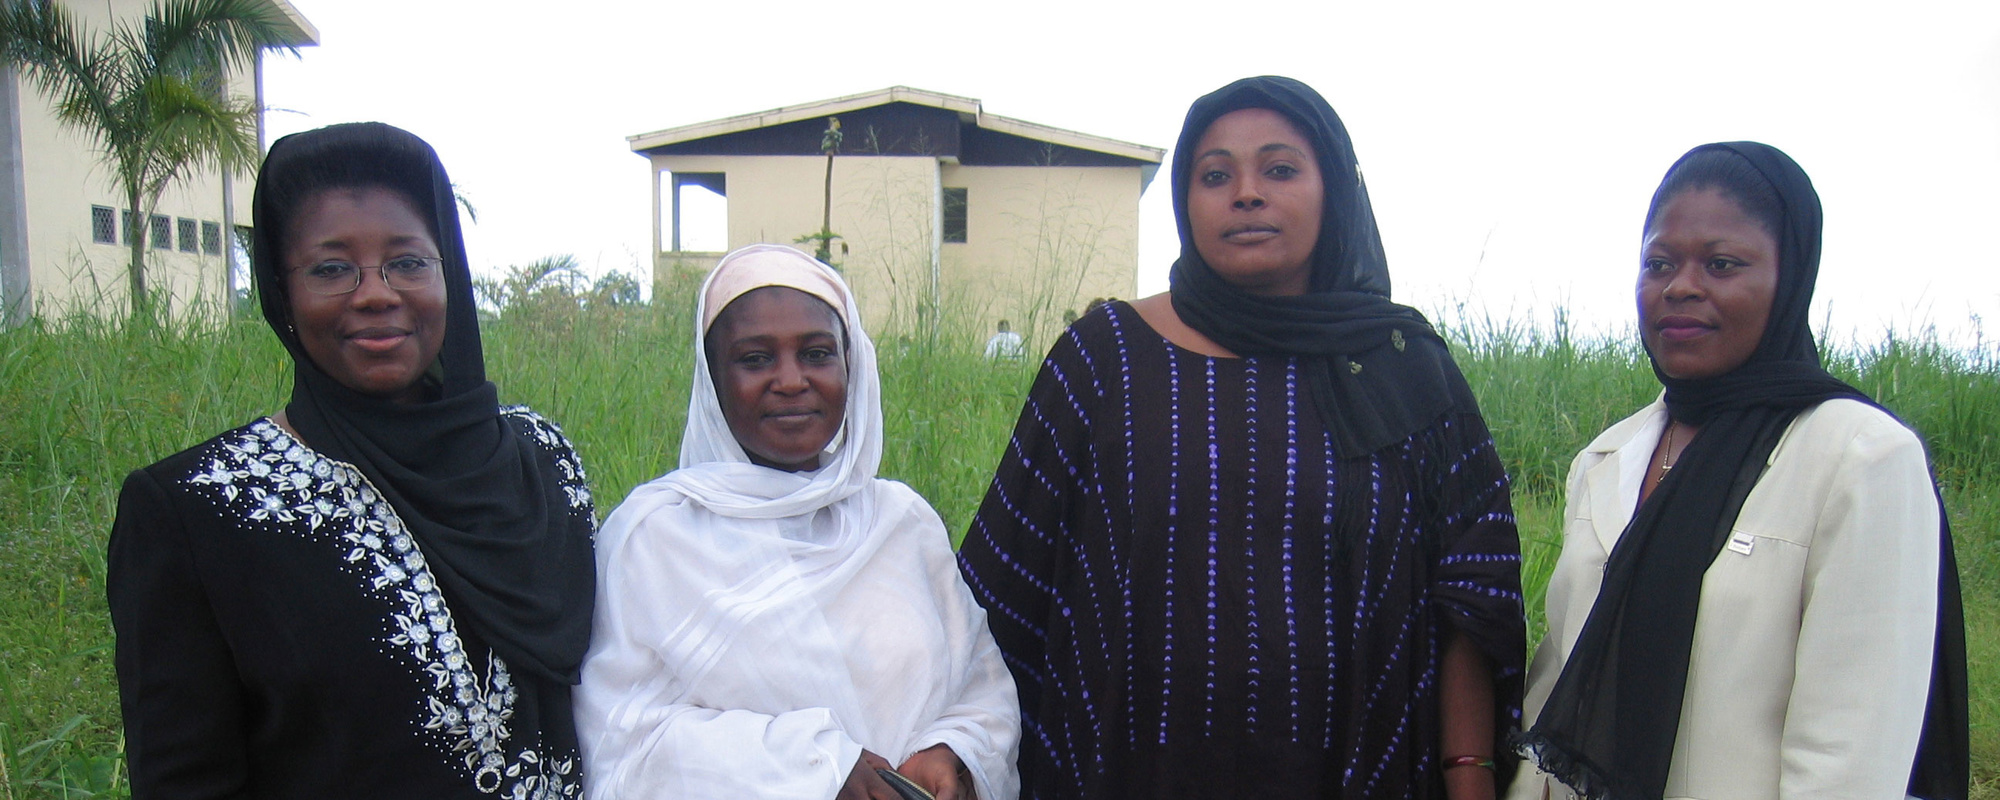 Sisters in Law. 2005. Great Britain/Cameroon. Directed by Kim Longinotto, Florence Ayisi. Courtesy Women Make Movies